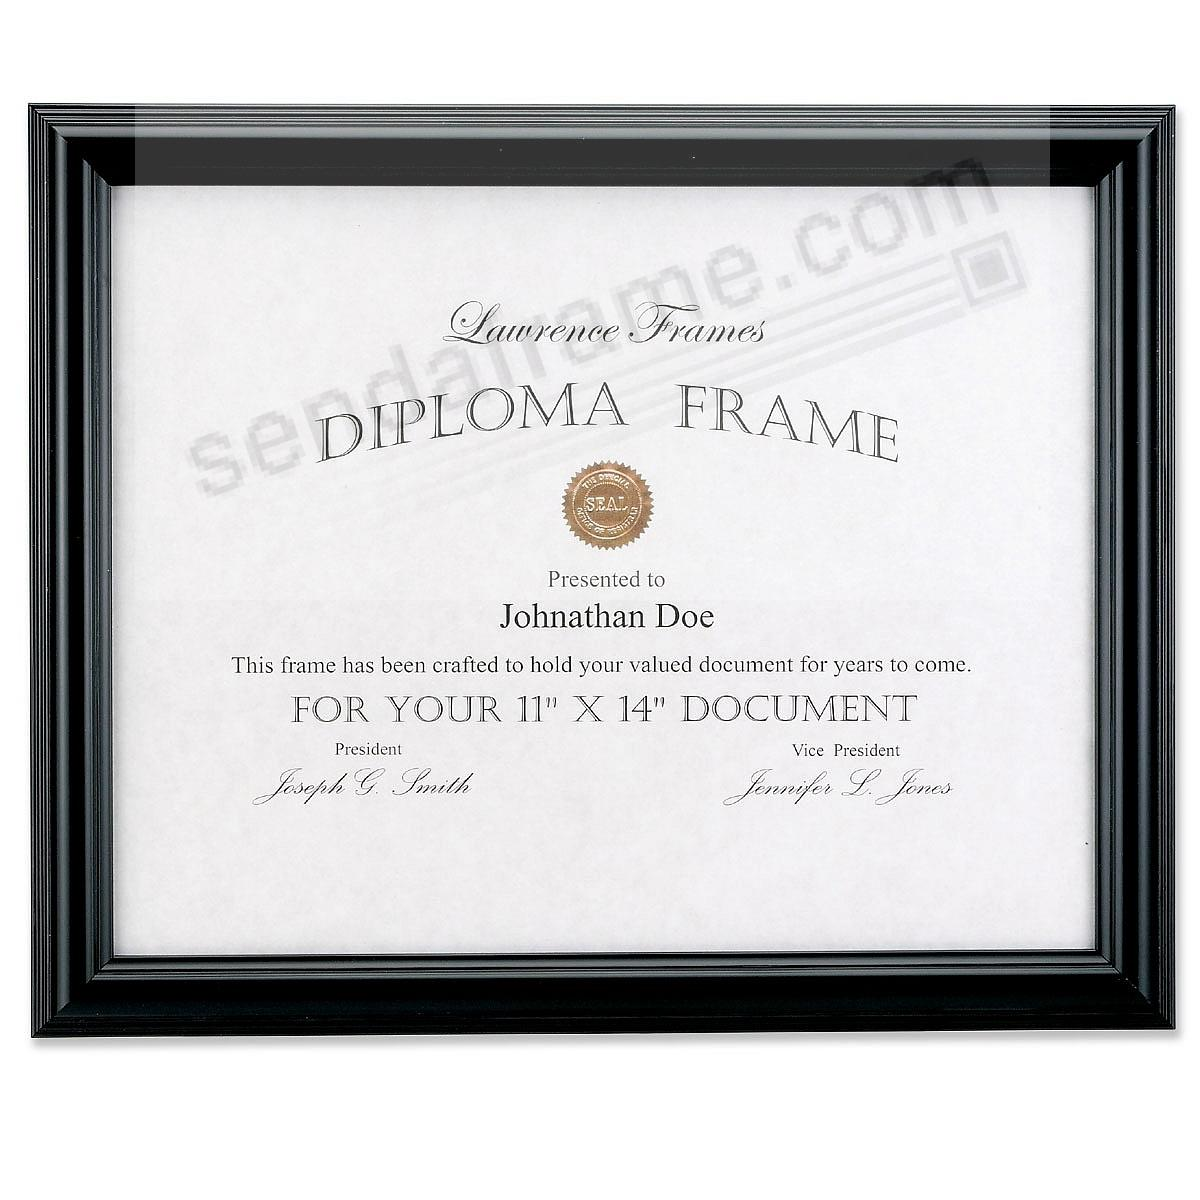 Economical Black Document by Lawrence Frames®